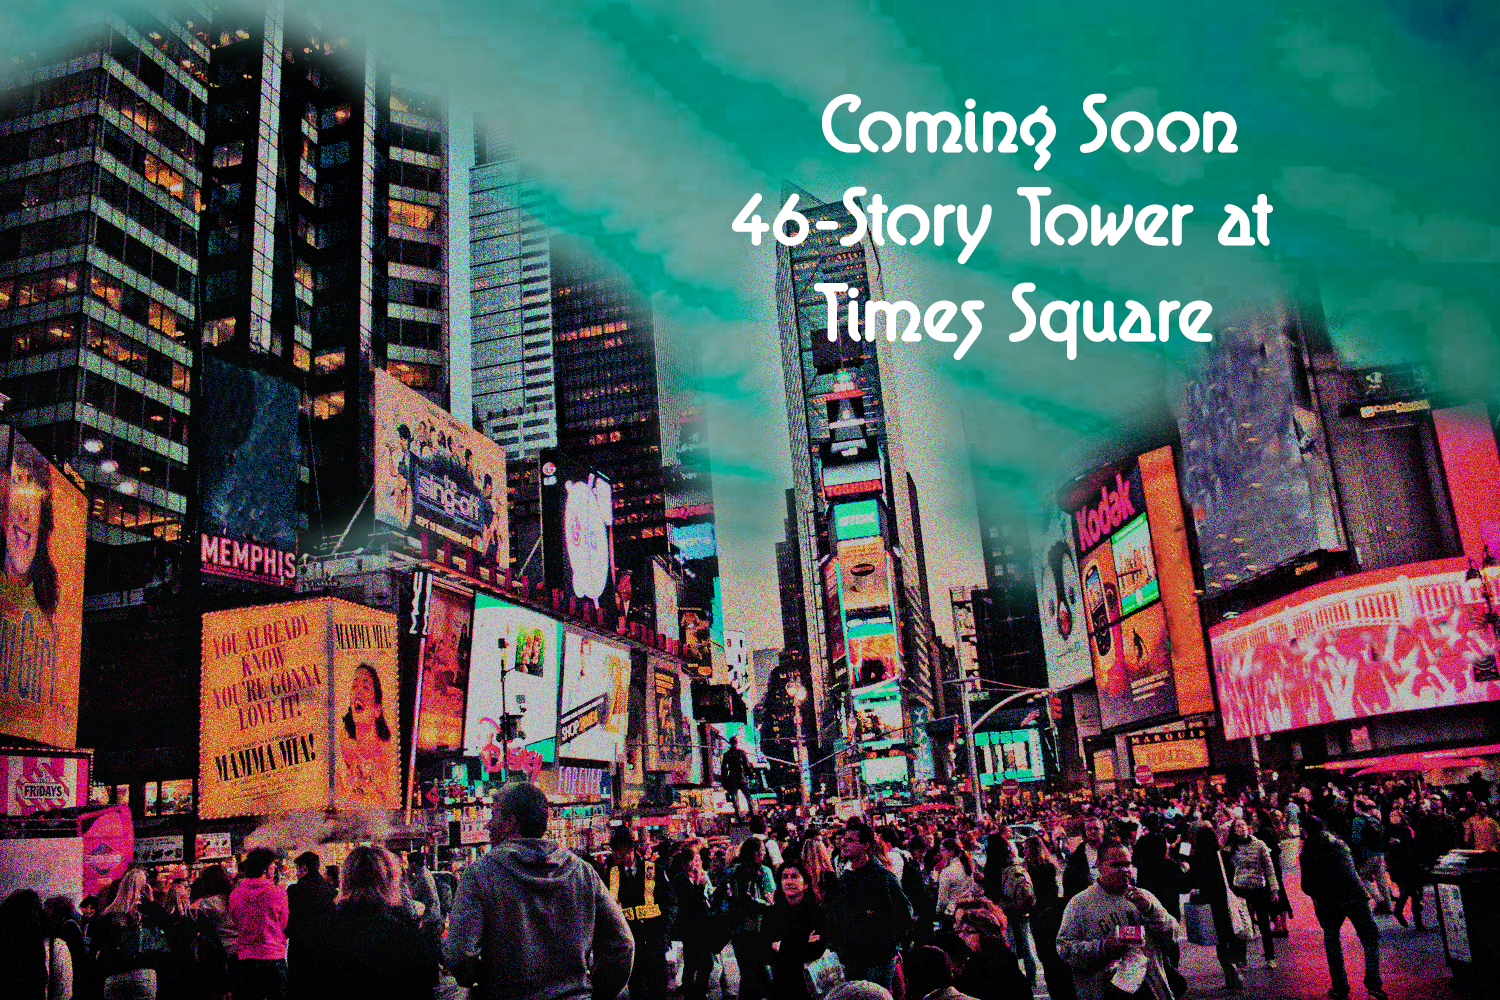 A new 46-Story Tower at Times Square to Build